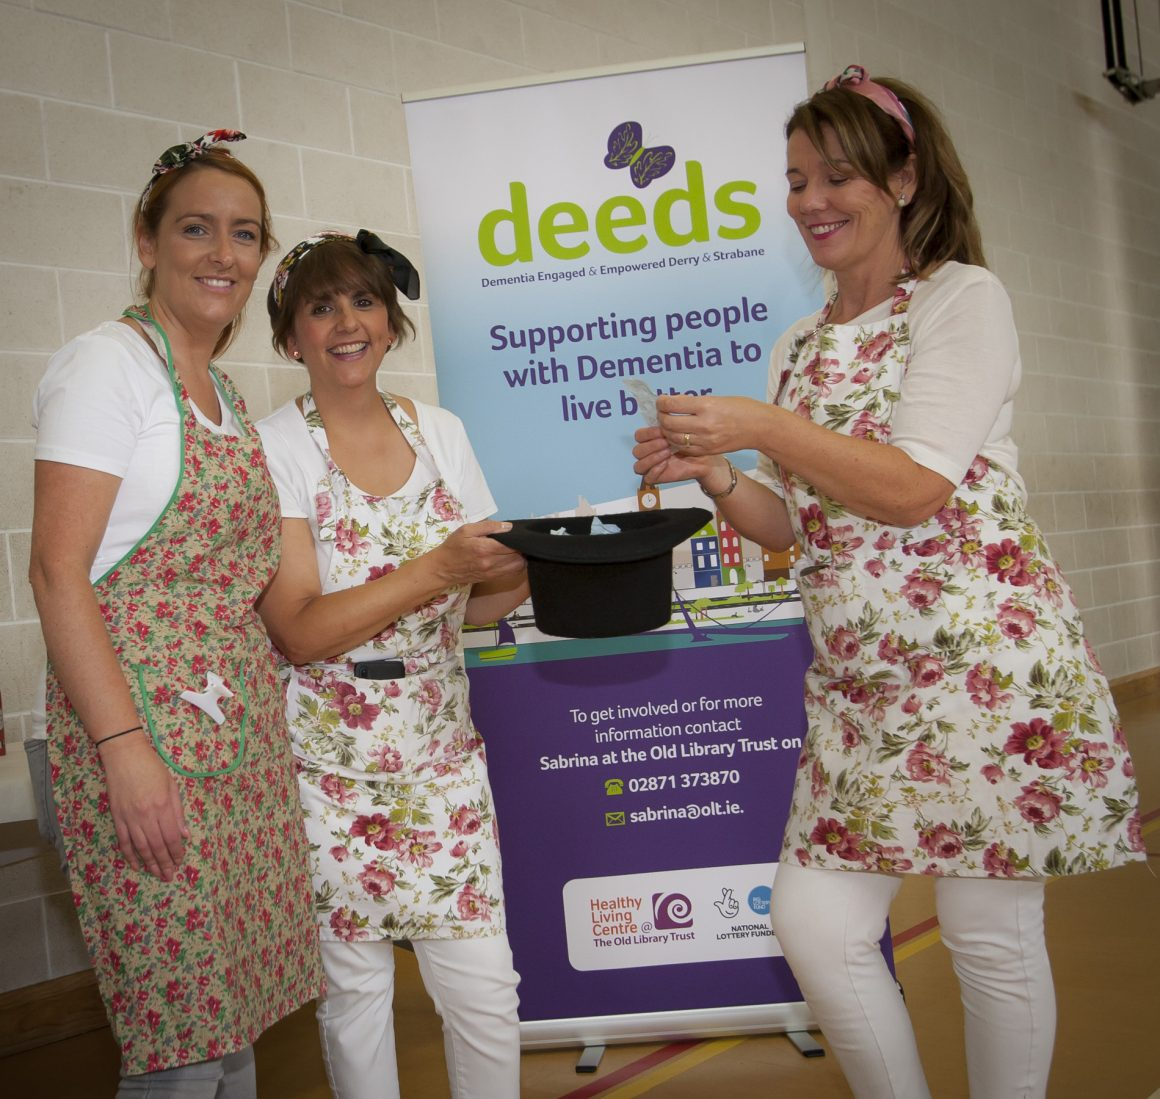 Dementia Engaged and Empowered Derry & Strabane